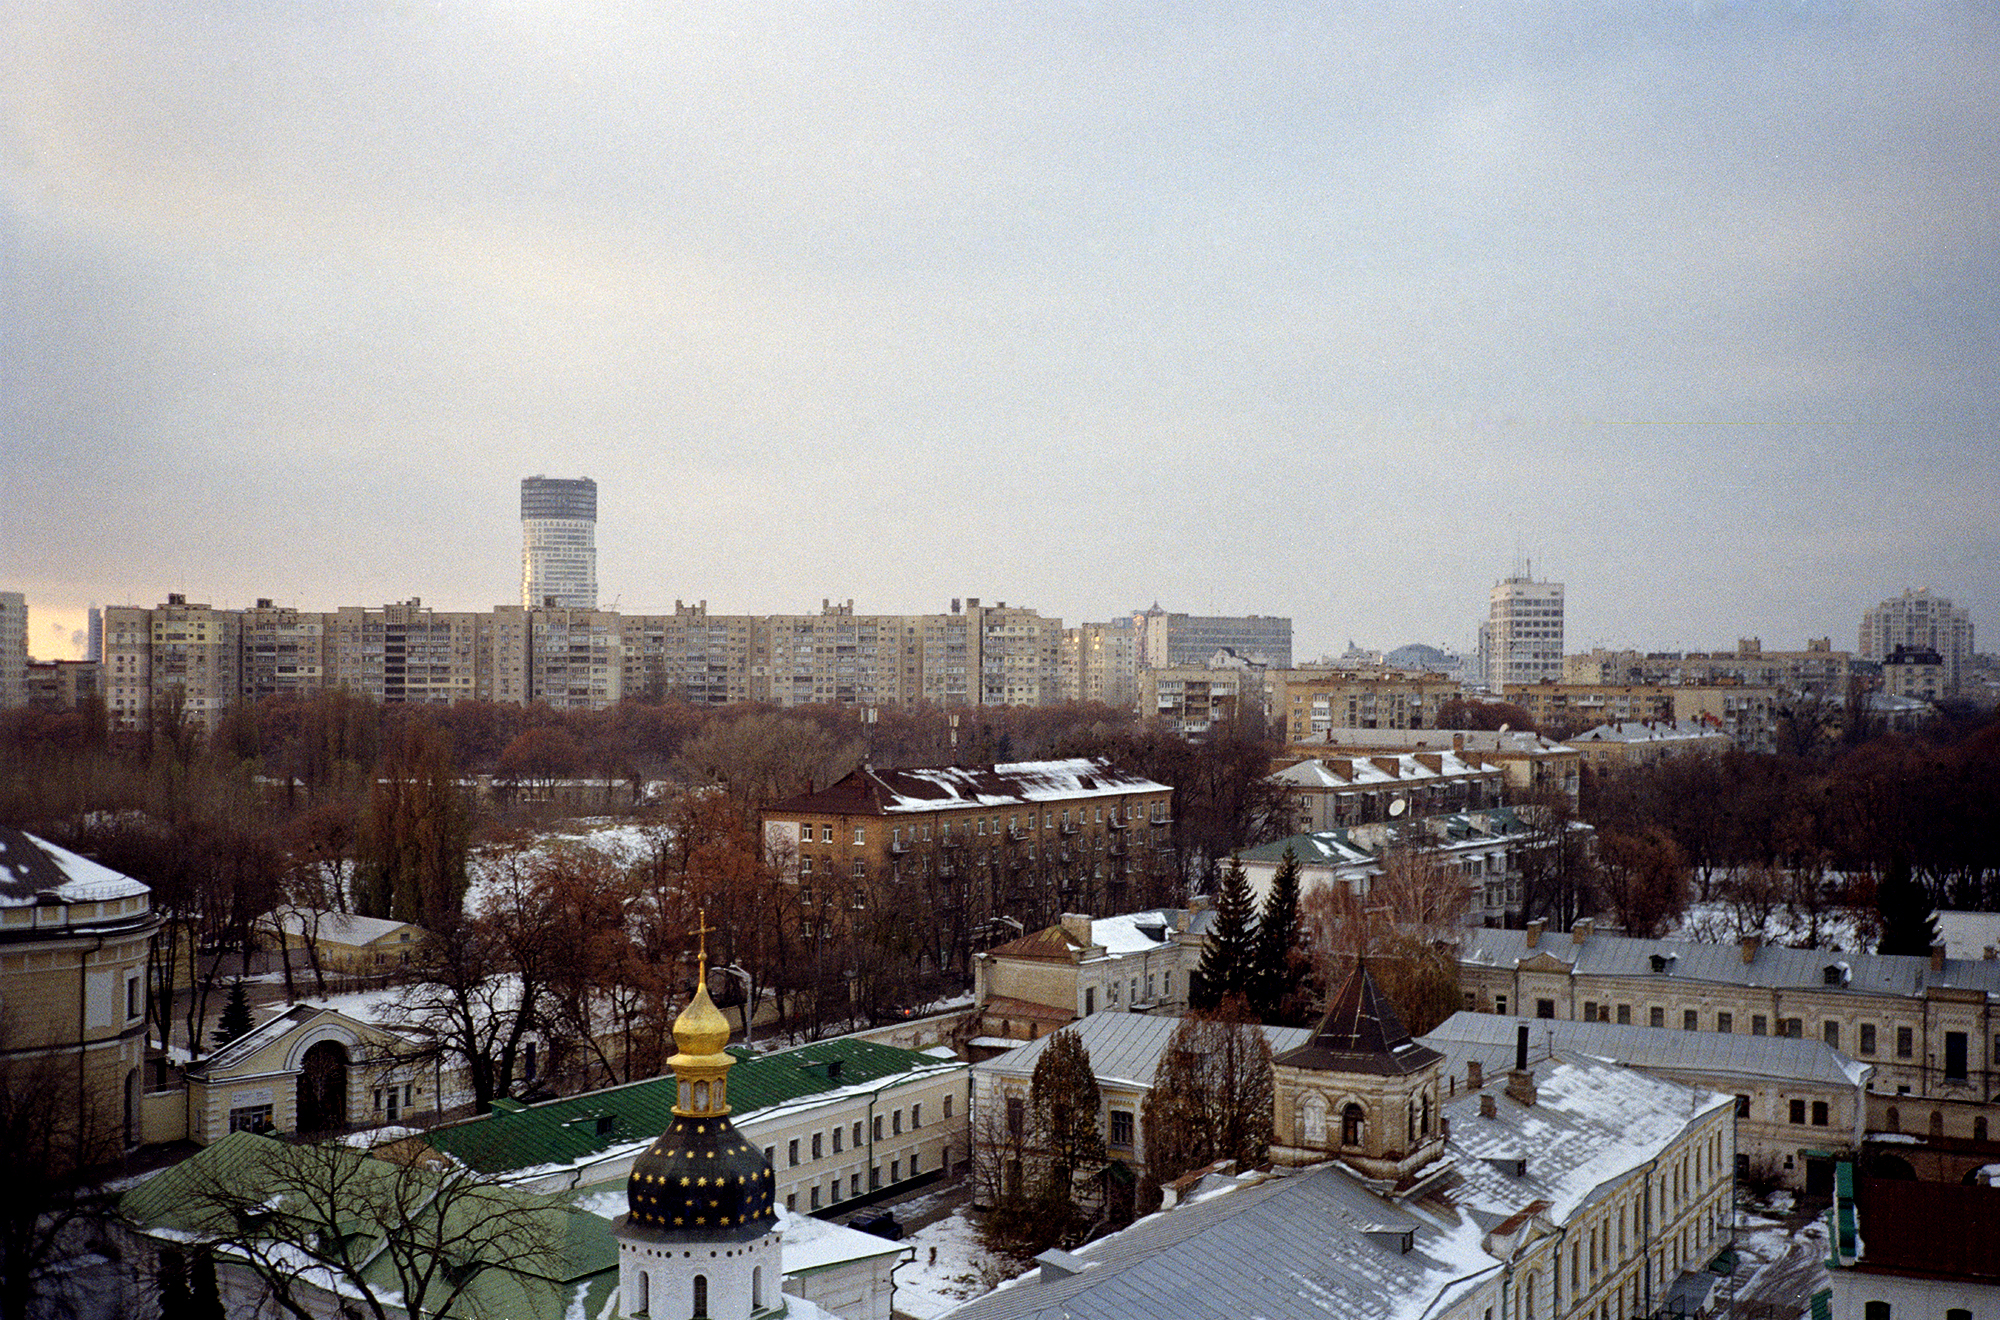 Looking to the city centre, Kyiv